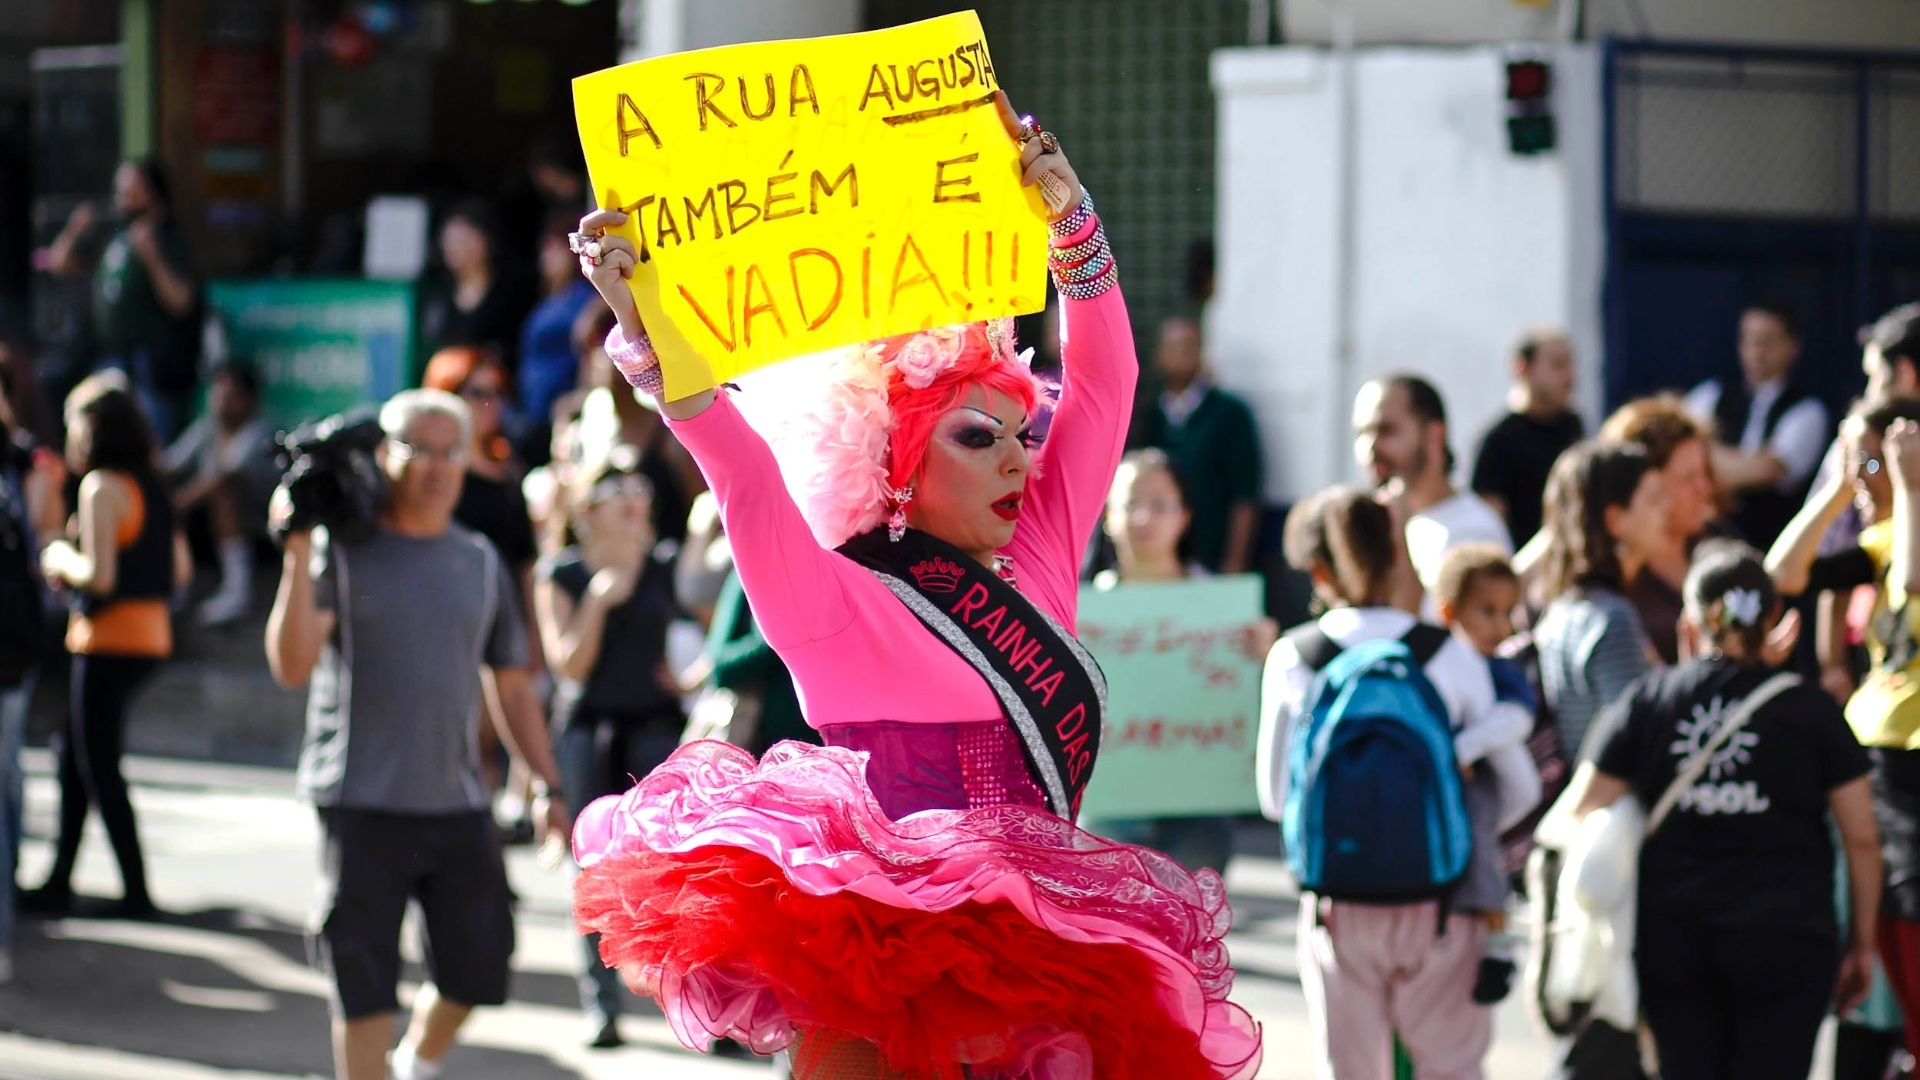 A Marcha das Vadias passou pela avenida Paulista e desceu a rua Augusta, em So Paulo, em defesa dos direitos das mulheres